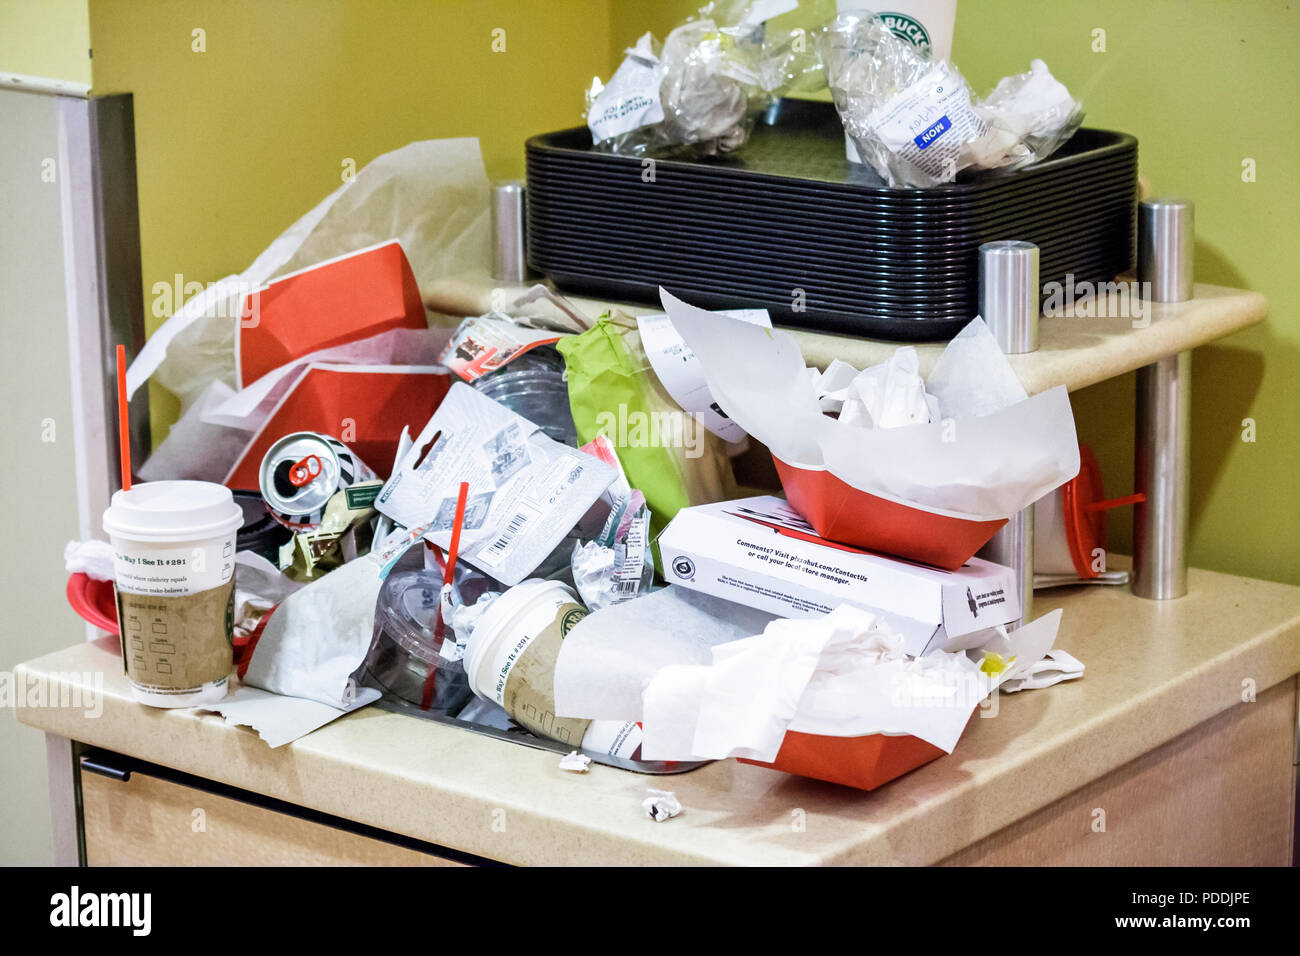 Miami Florida Shops at Midtown Target Discount Store trash cups cans food containers paper waste environment dirty nasty overflo - Stock Image